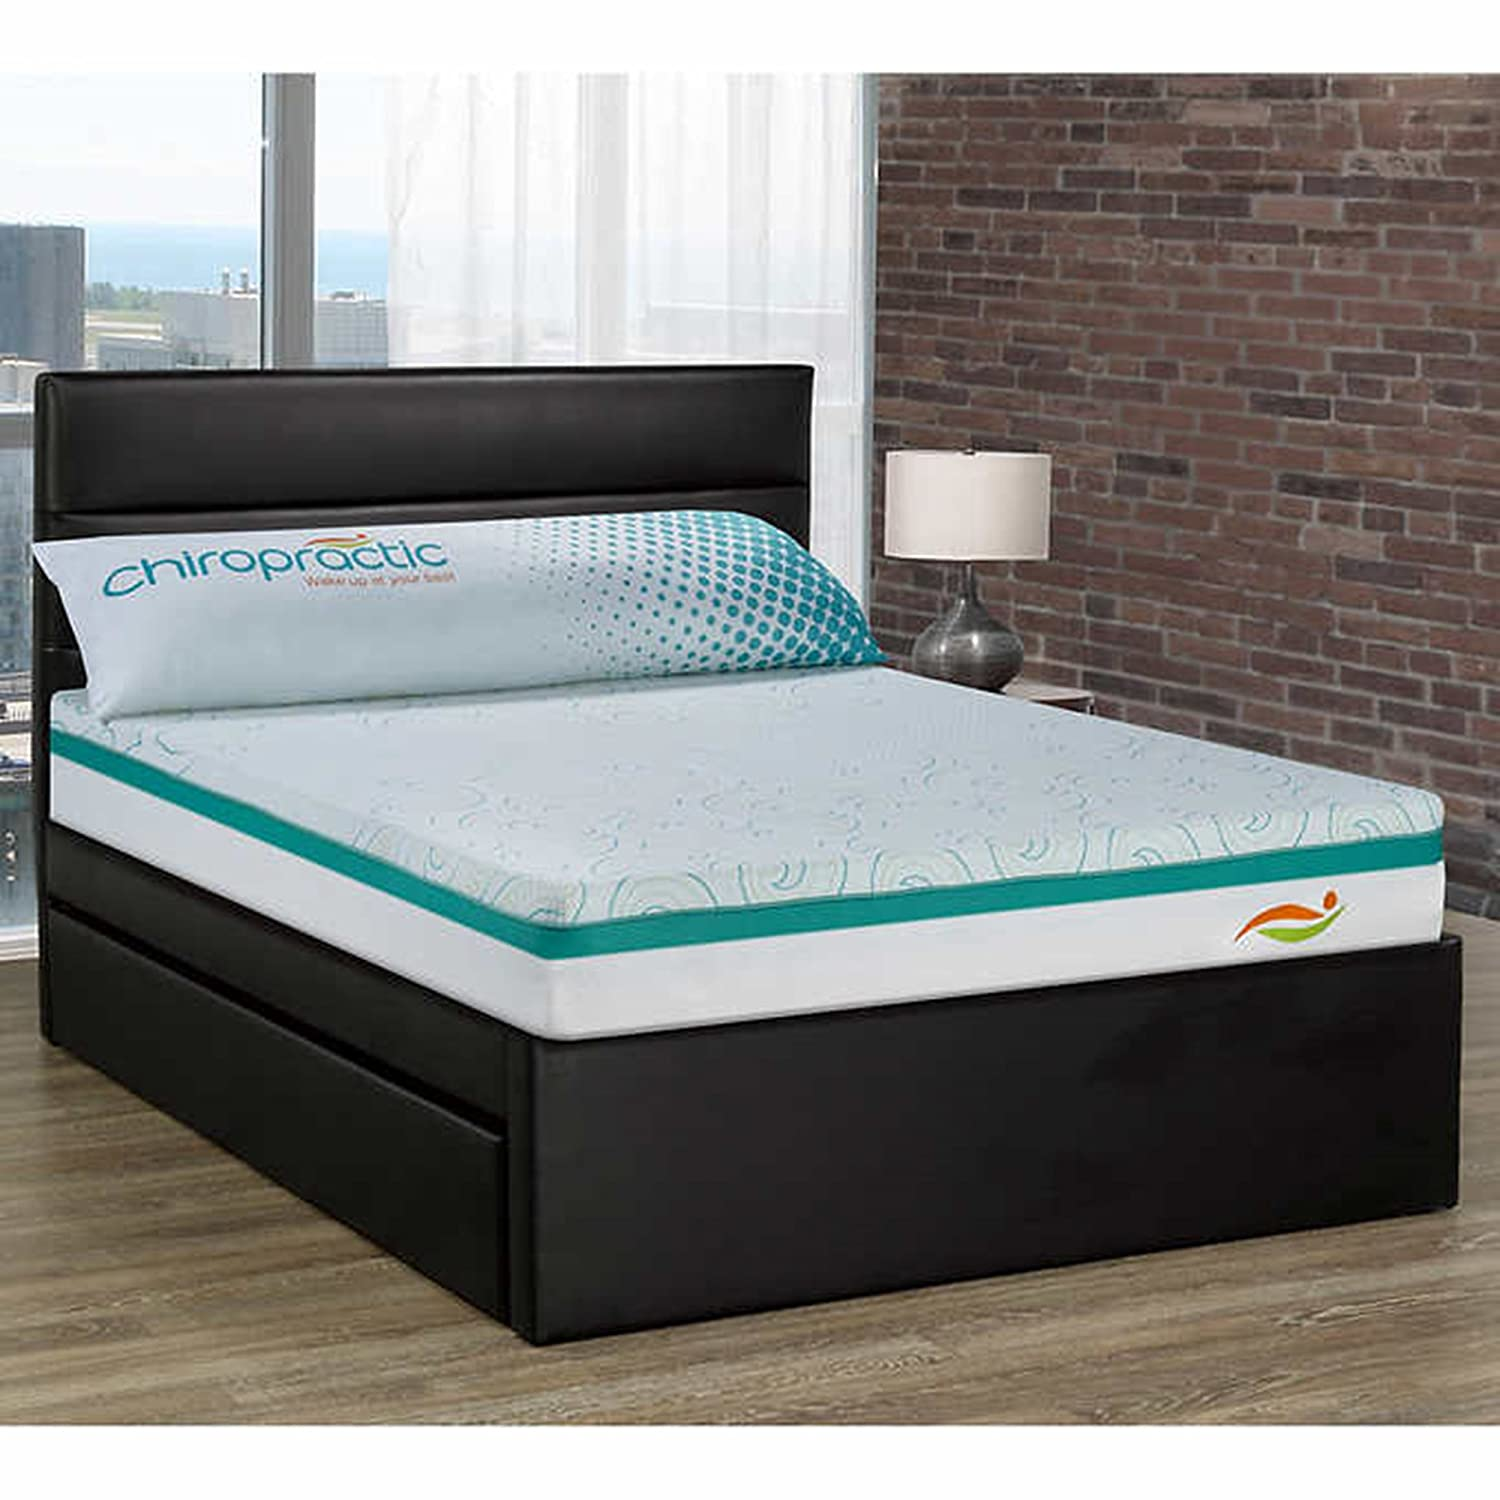 elegant recommended mattress on bedroom ideas decoration chiropractor with master